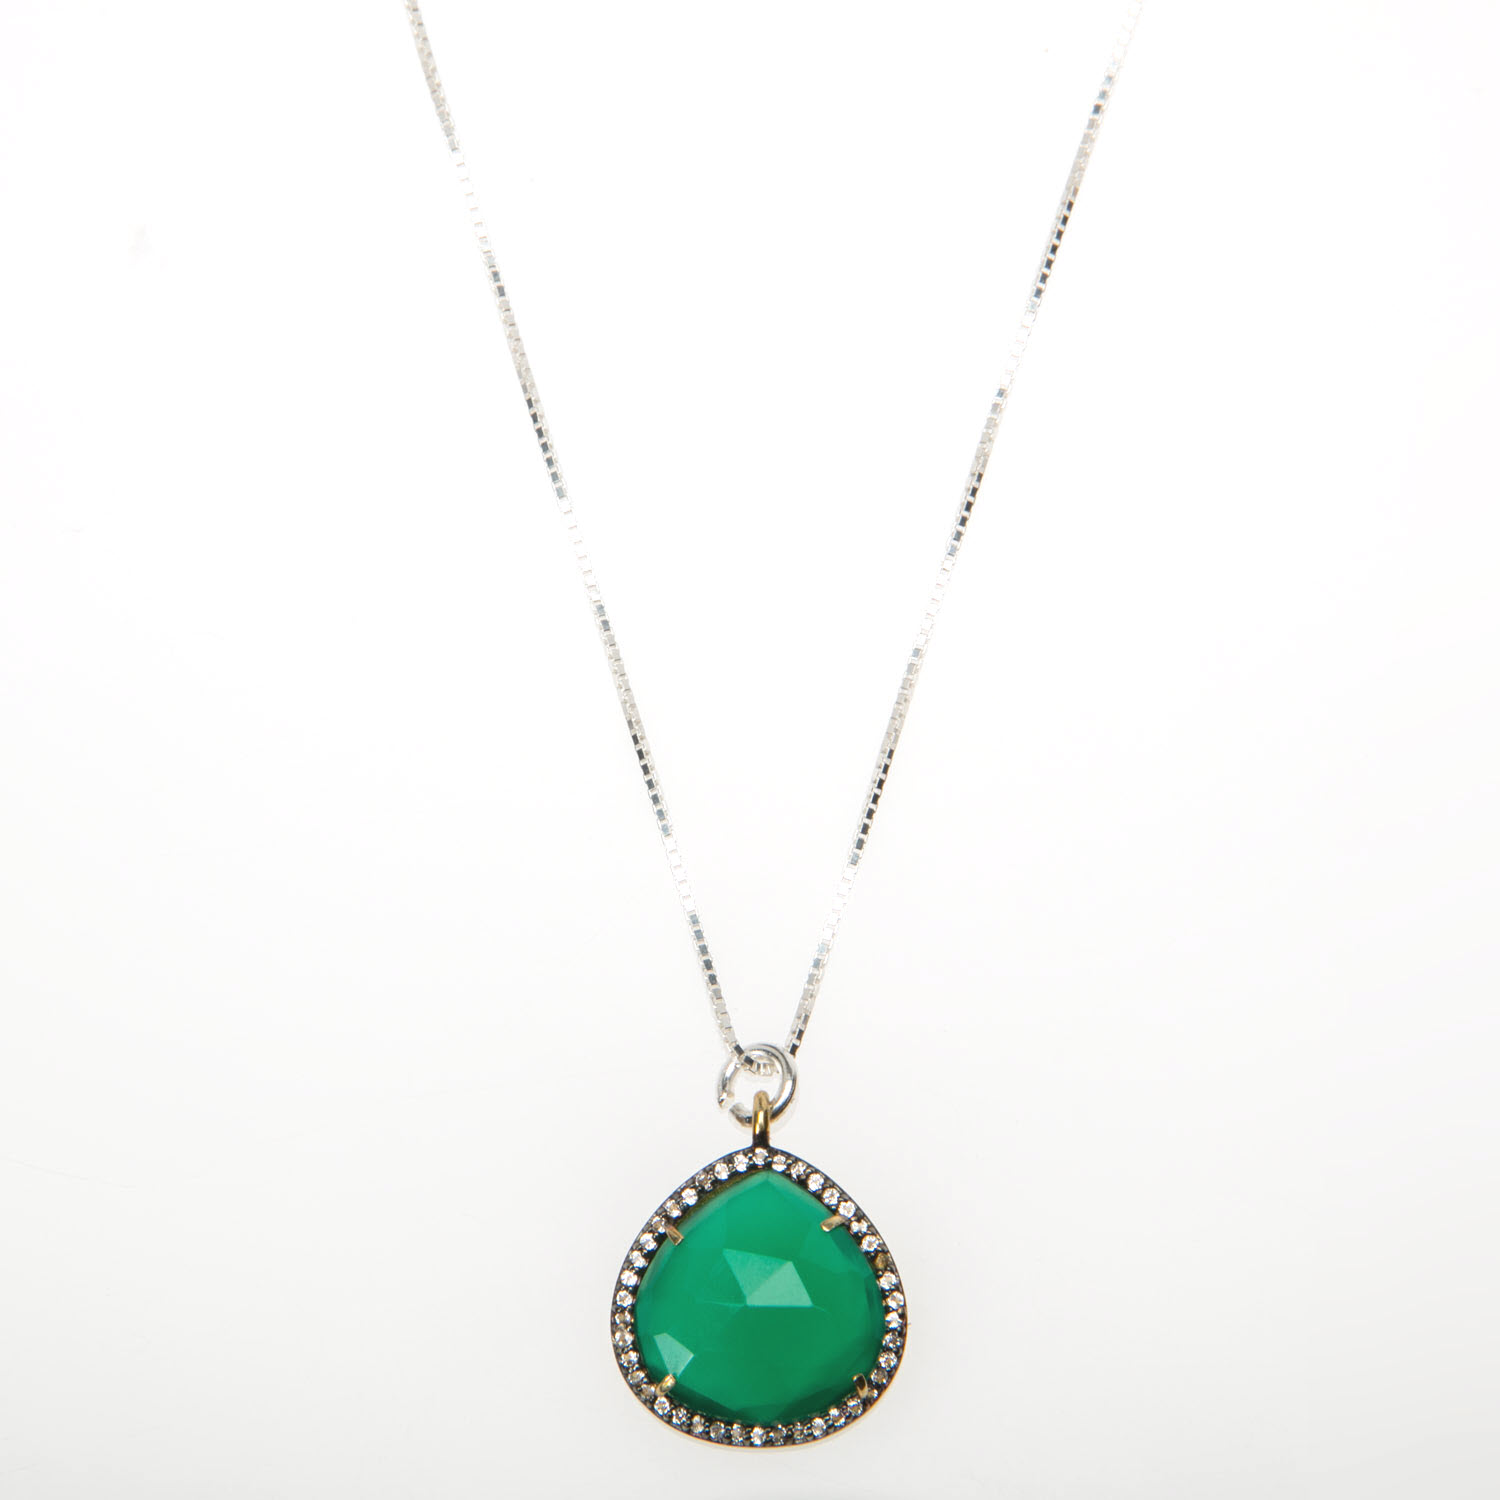 Green Oynx and White Topaz Pave Set Necklace